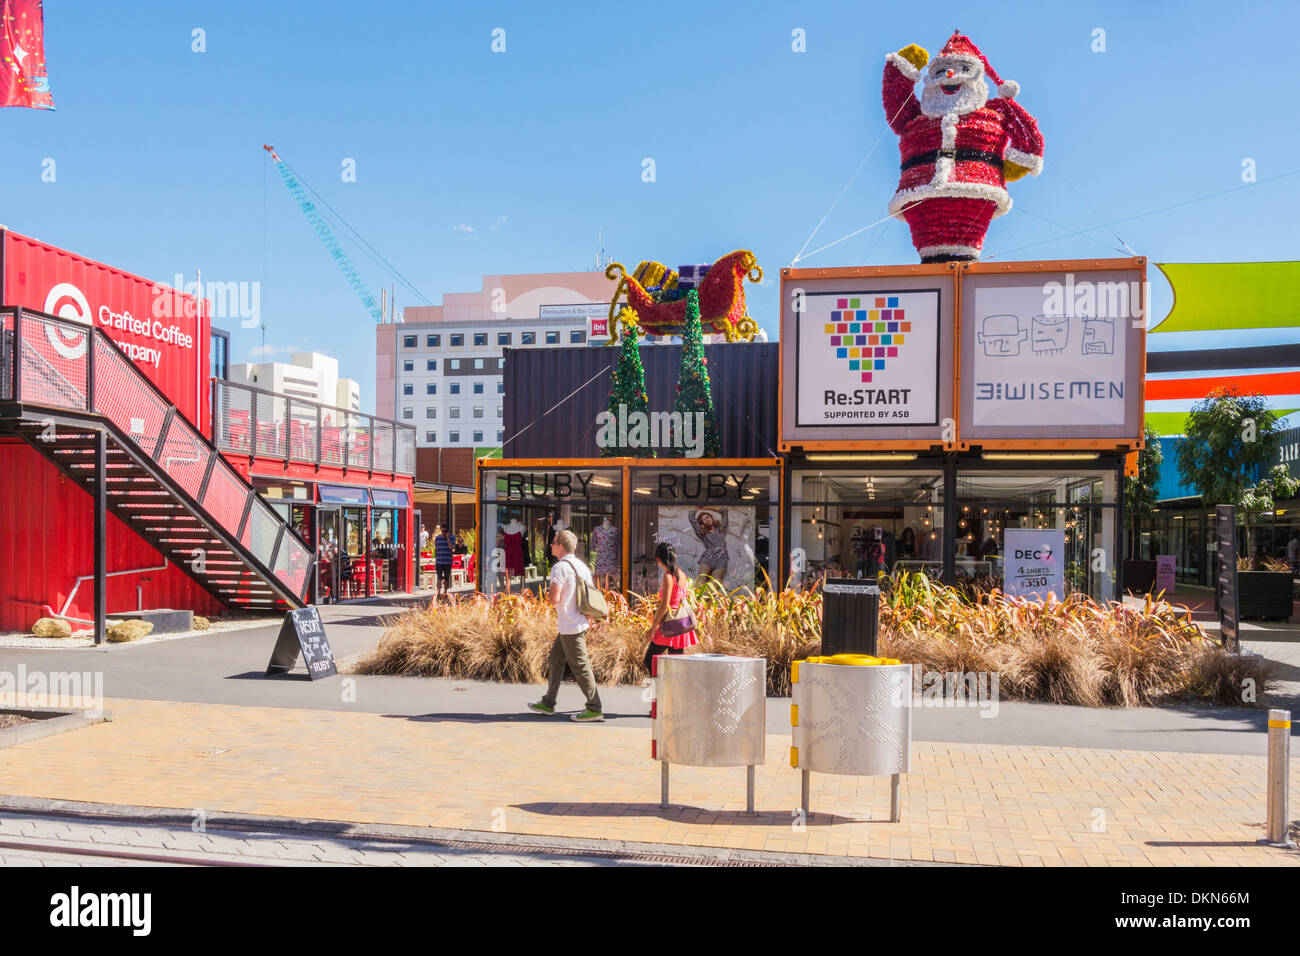 Centre commercial de conteneurs, Christchurch, Nouvelle-Zélande, à Noël. Décorations de Noël comme le tremblement de terre de Christchurch récupération... Photo Stock